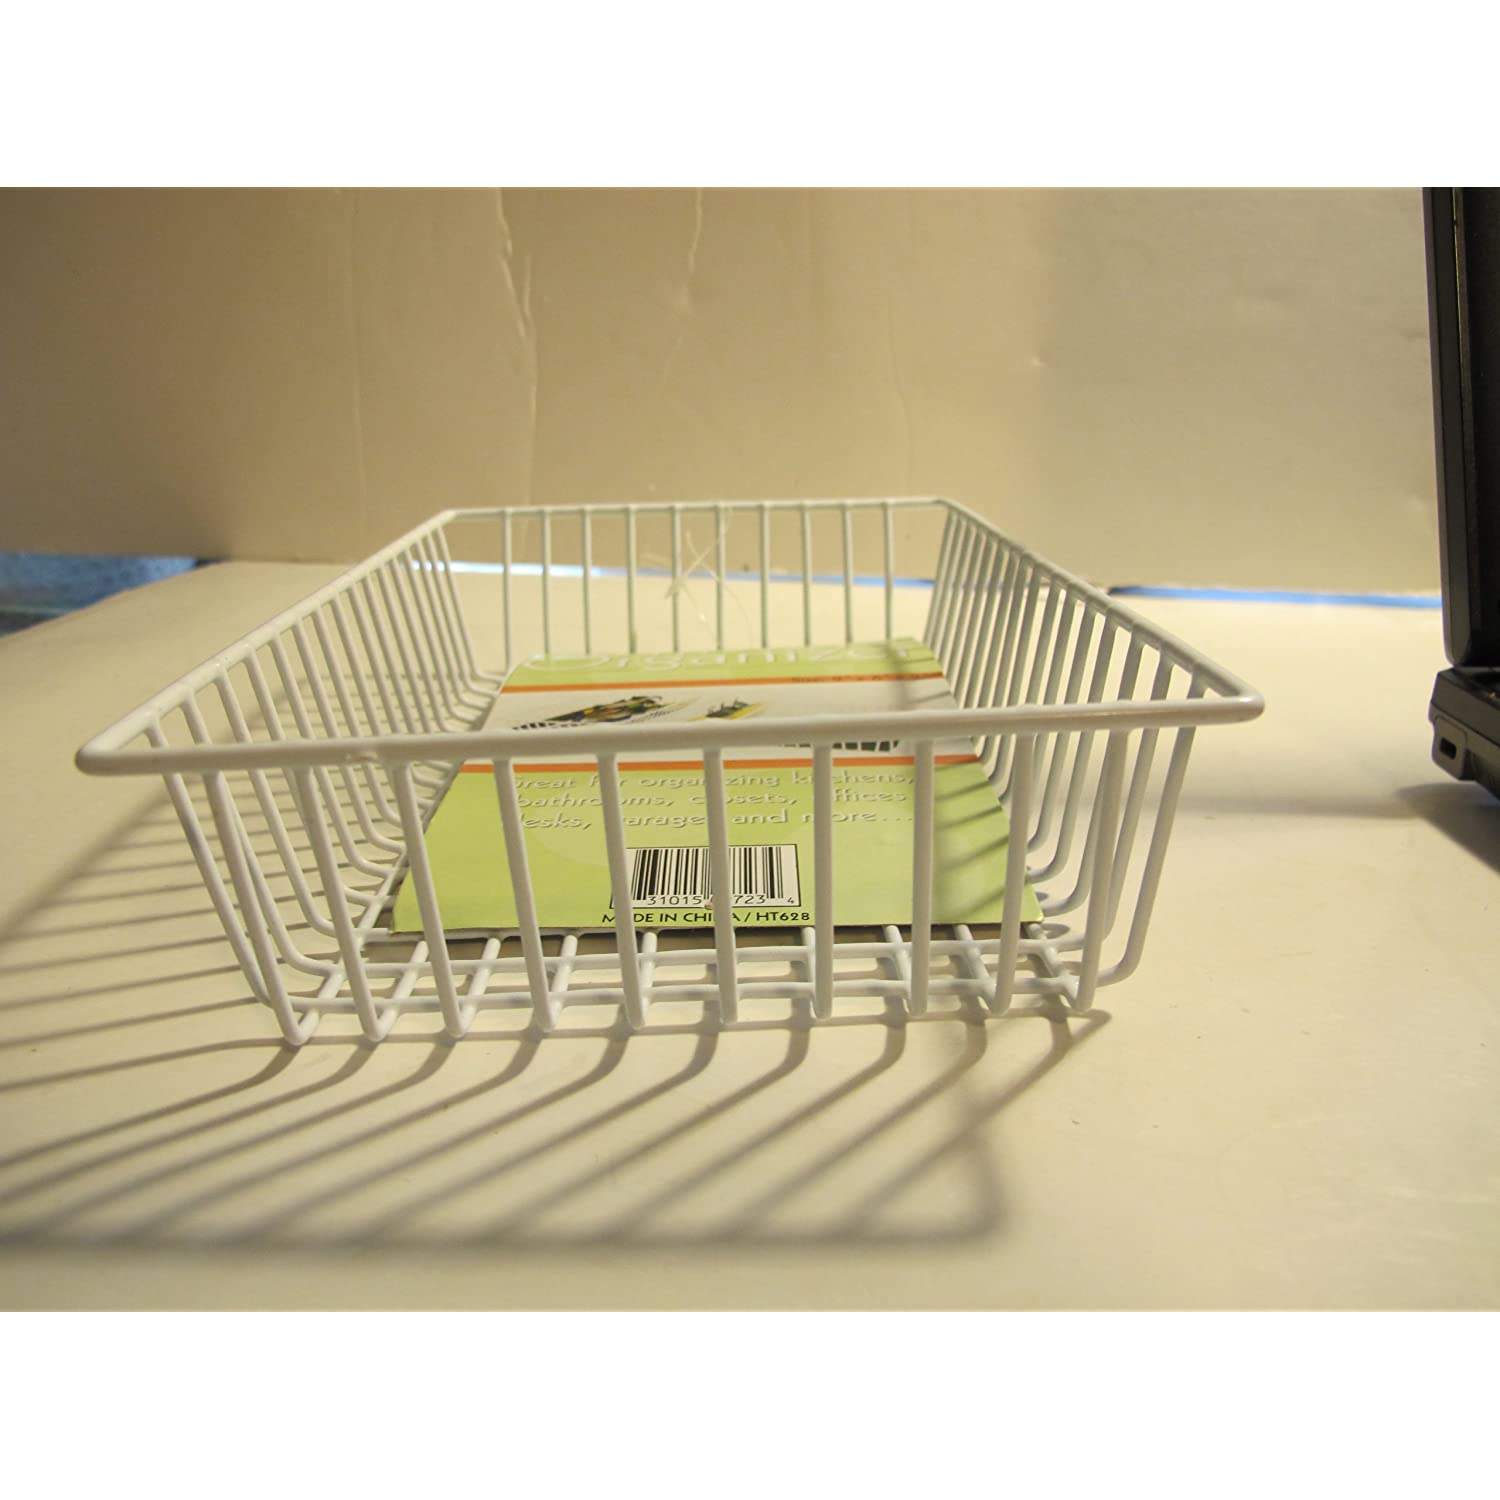 Drawer Organizer Basket. 6x9x2 inches. Plastic Coated Wire. great for organizing kitchens, bathrooms, closets, offices and many other places. by Drawer Organizers